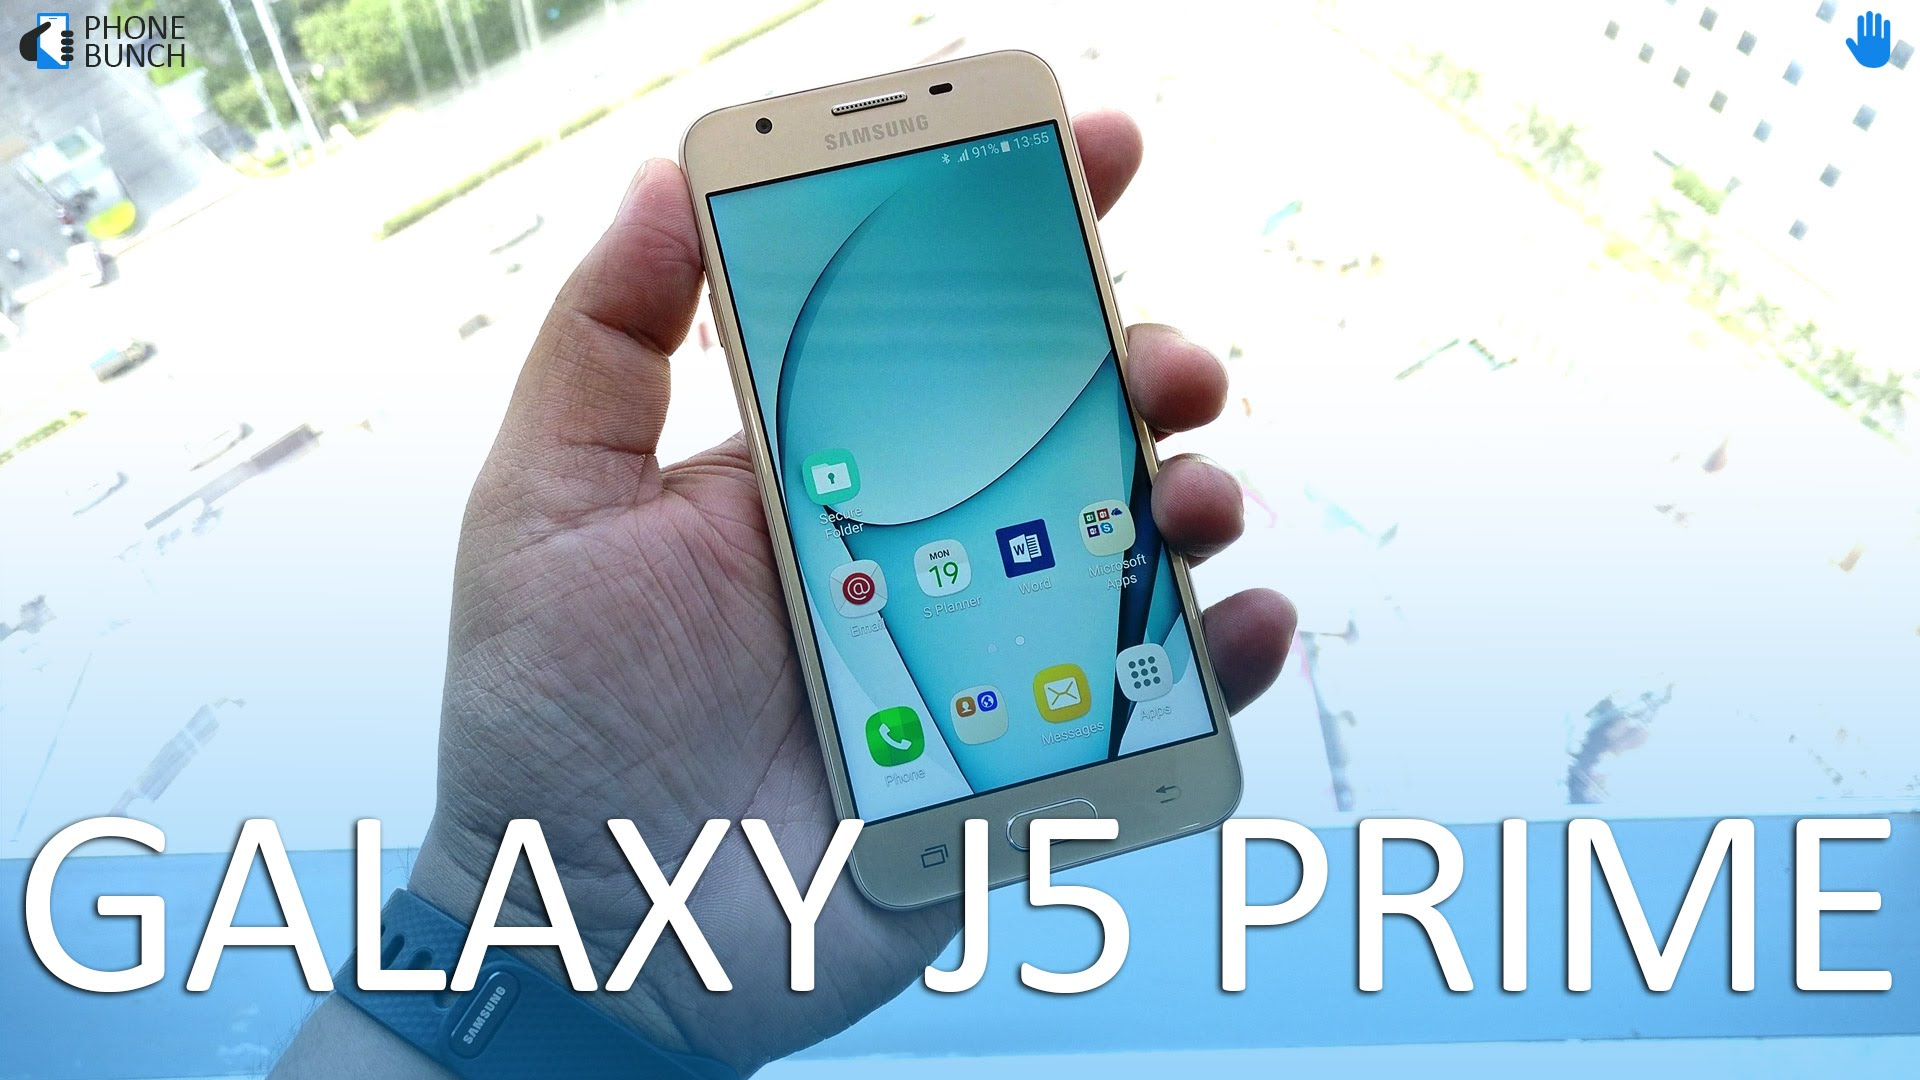 Samsung Galaxy J5 Prime Hands on Camera Samples and Top 1920x1080